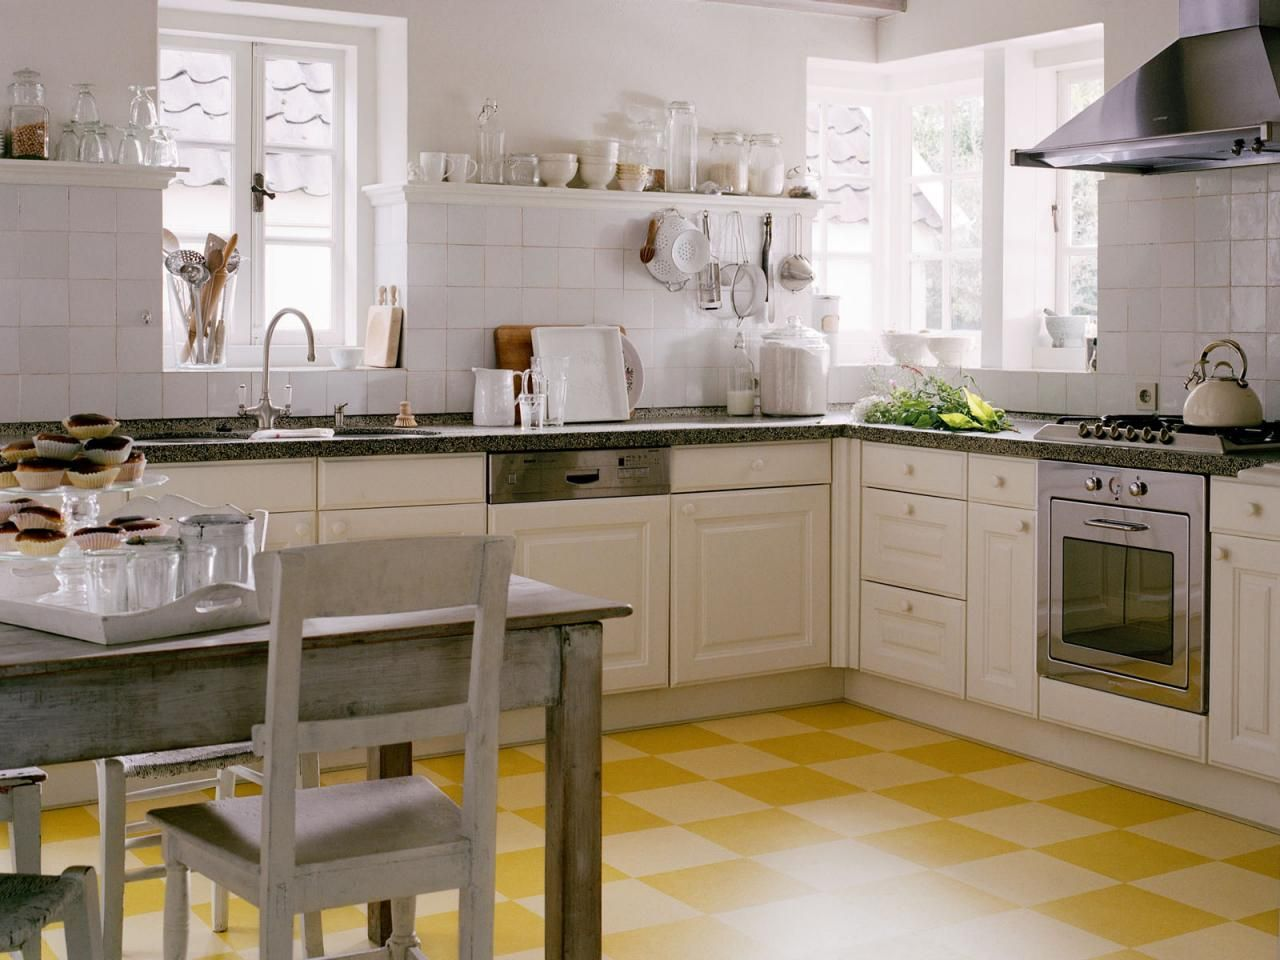 Retro Kitchen Floor 1000 Images About Flooring Ideas For Vintage Kitchen On Pinterest